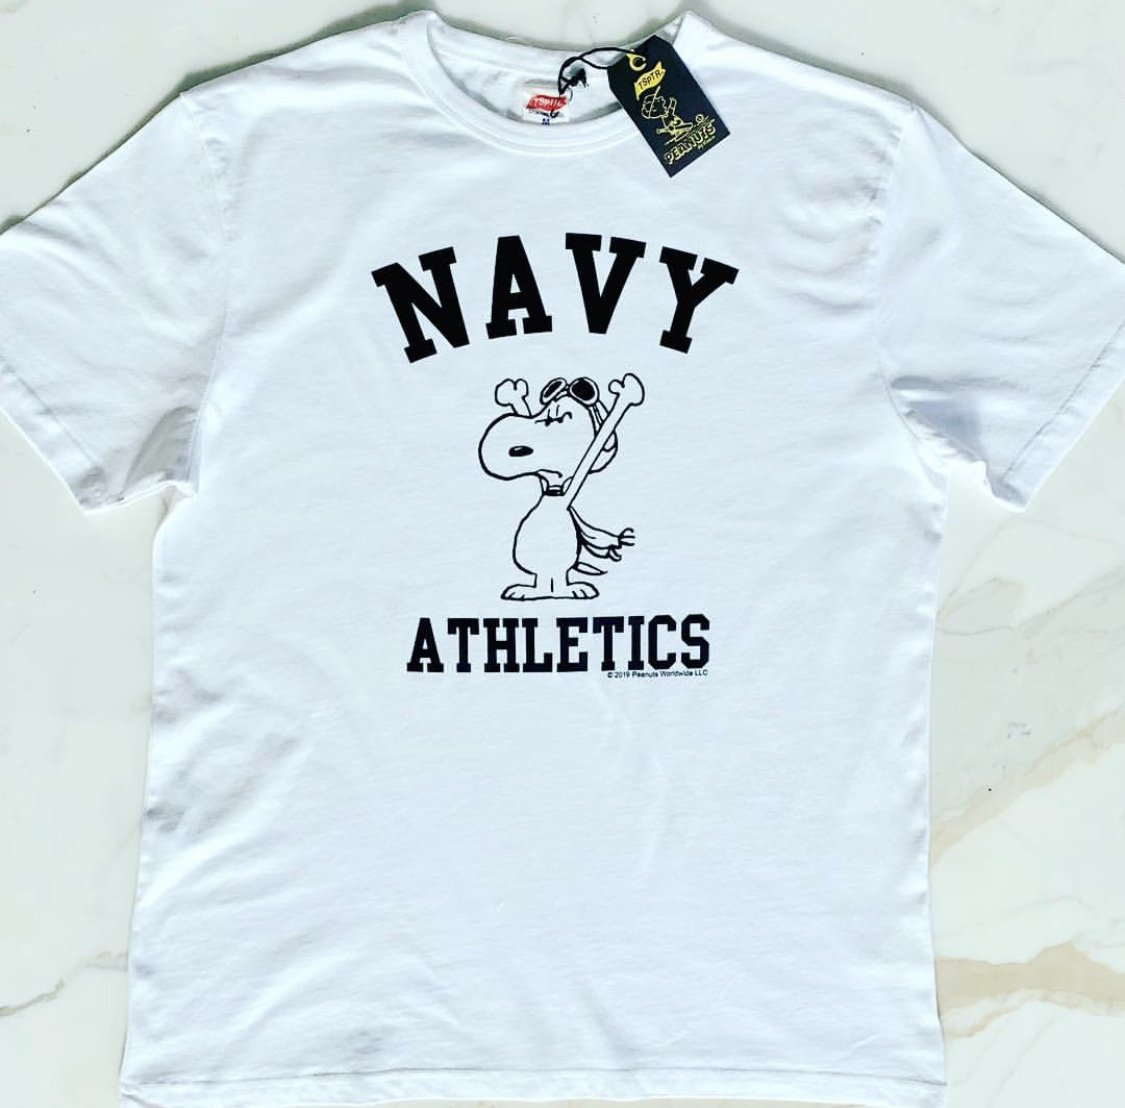 TSPTR Navy Athletics T-Shirt. White shirt with a design of Snoopy wearing aviator goggles on his head. The Words Navy Athletics prints next to him